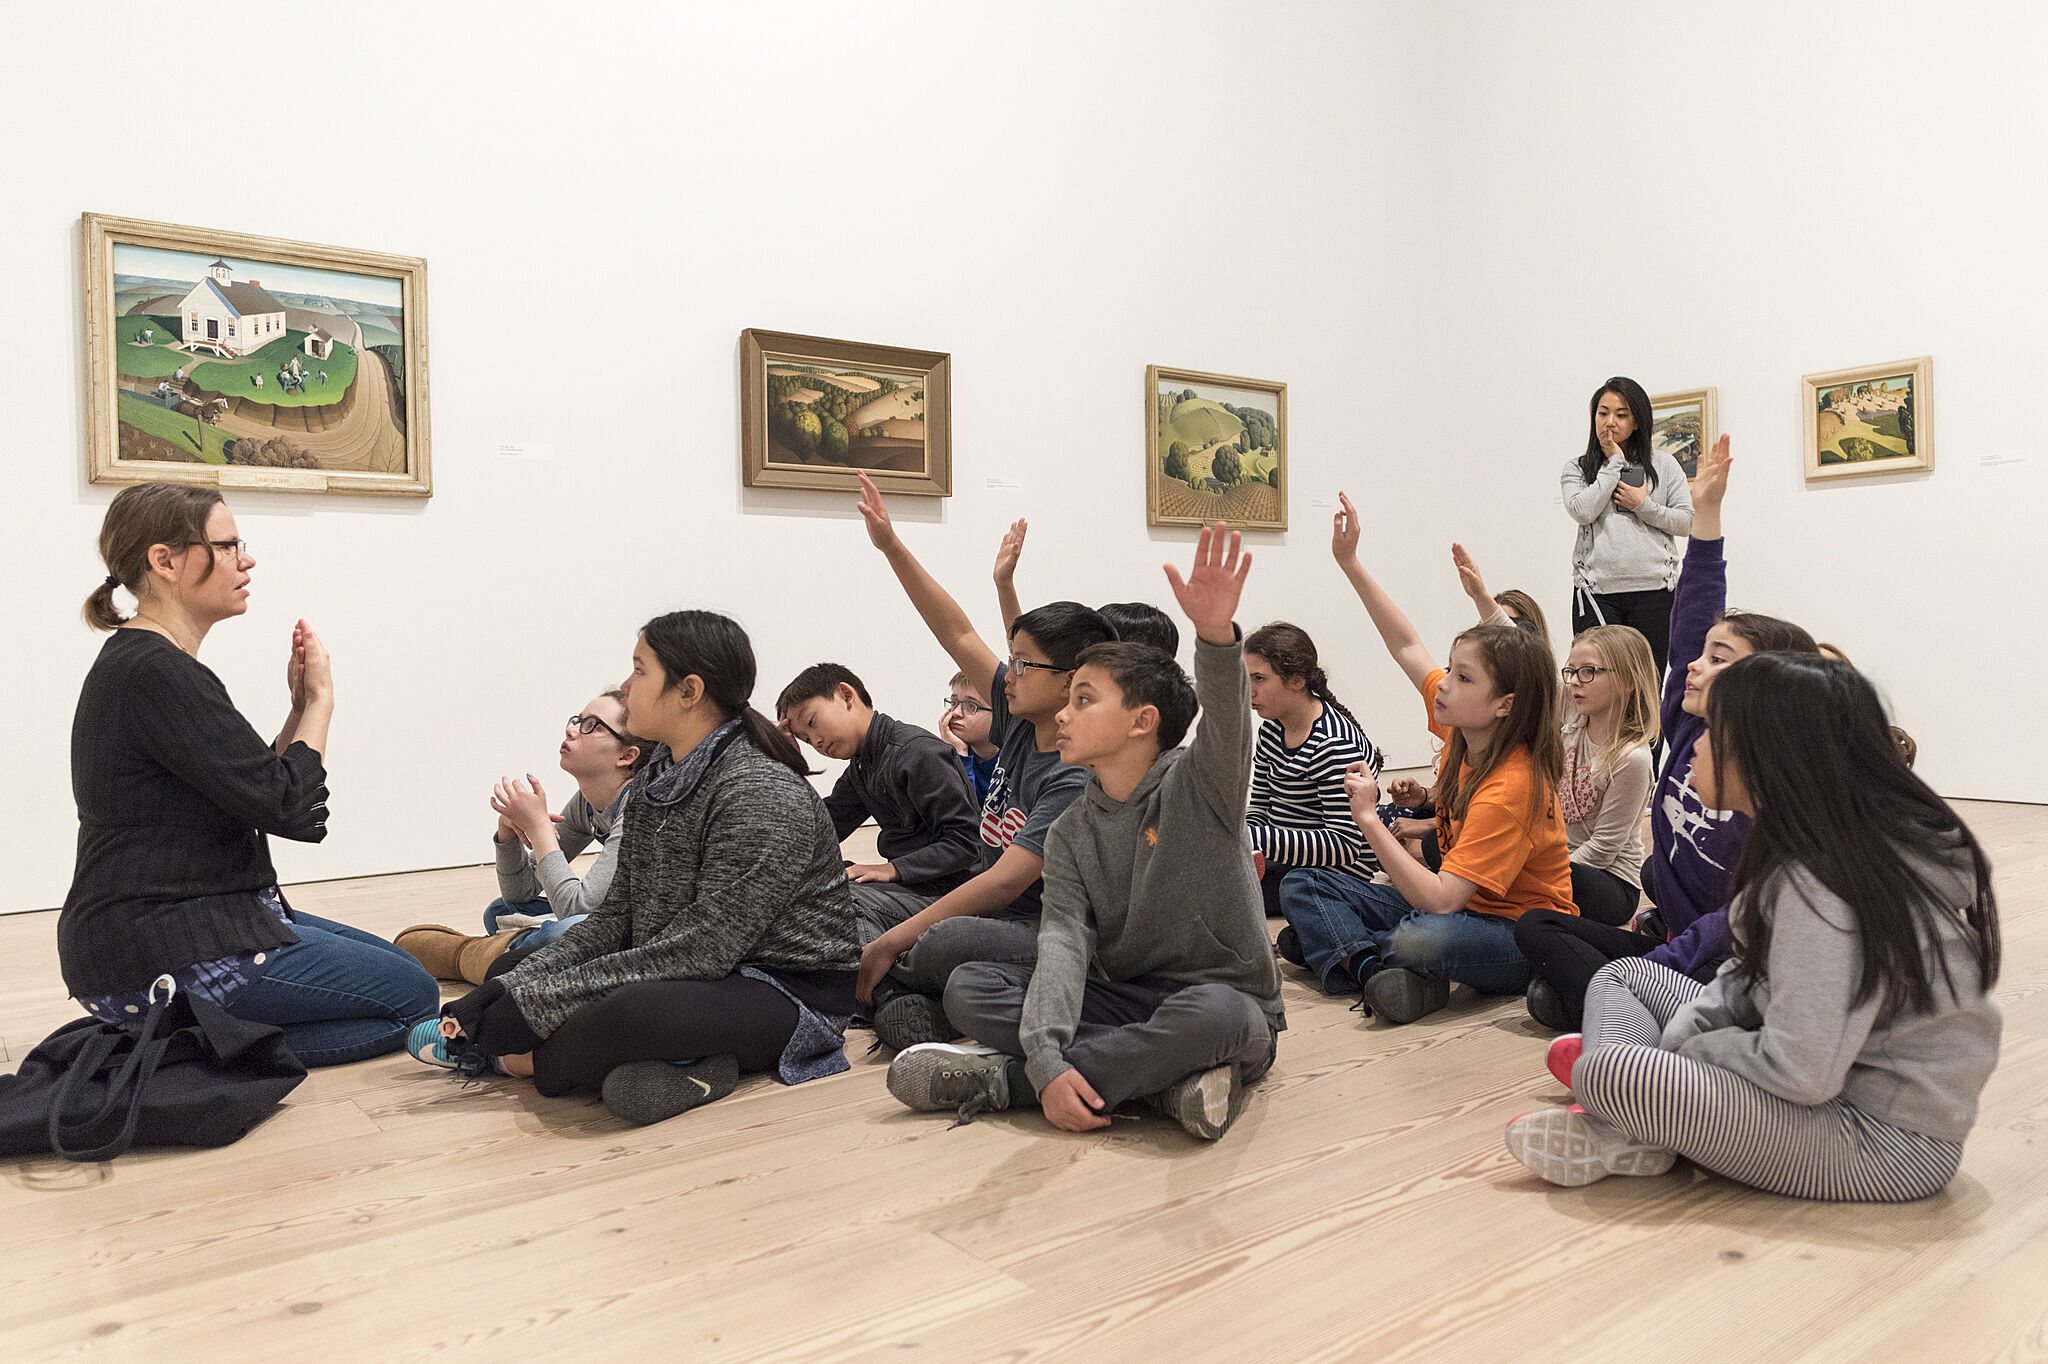 Children sitting on the floor in a gallery.